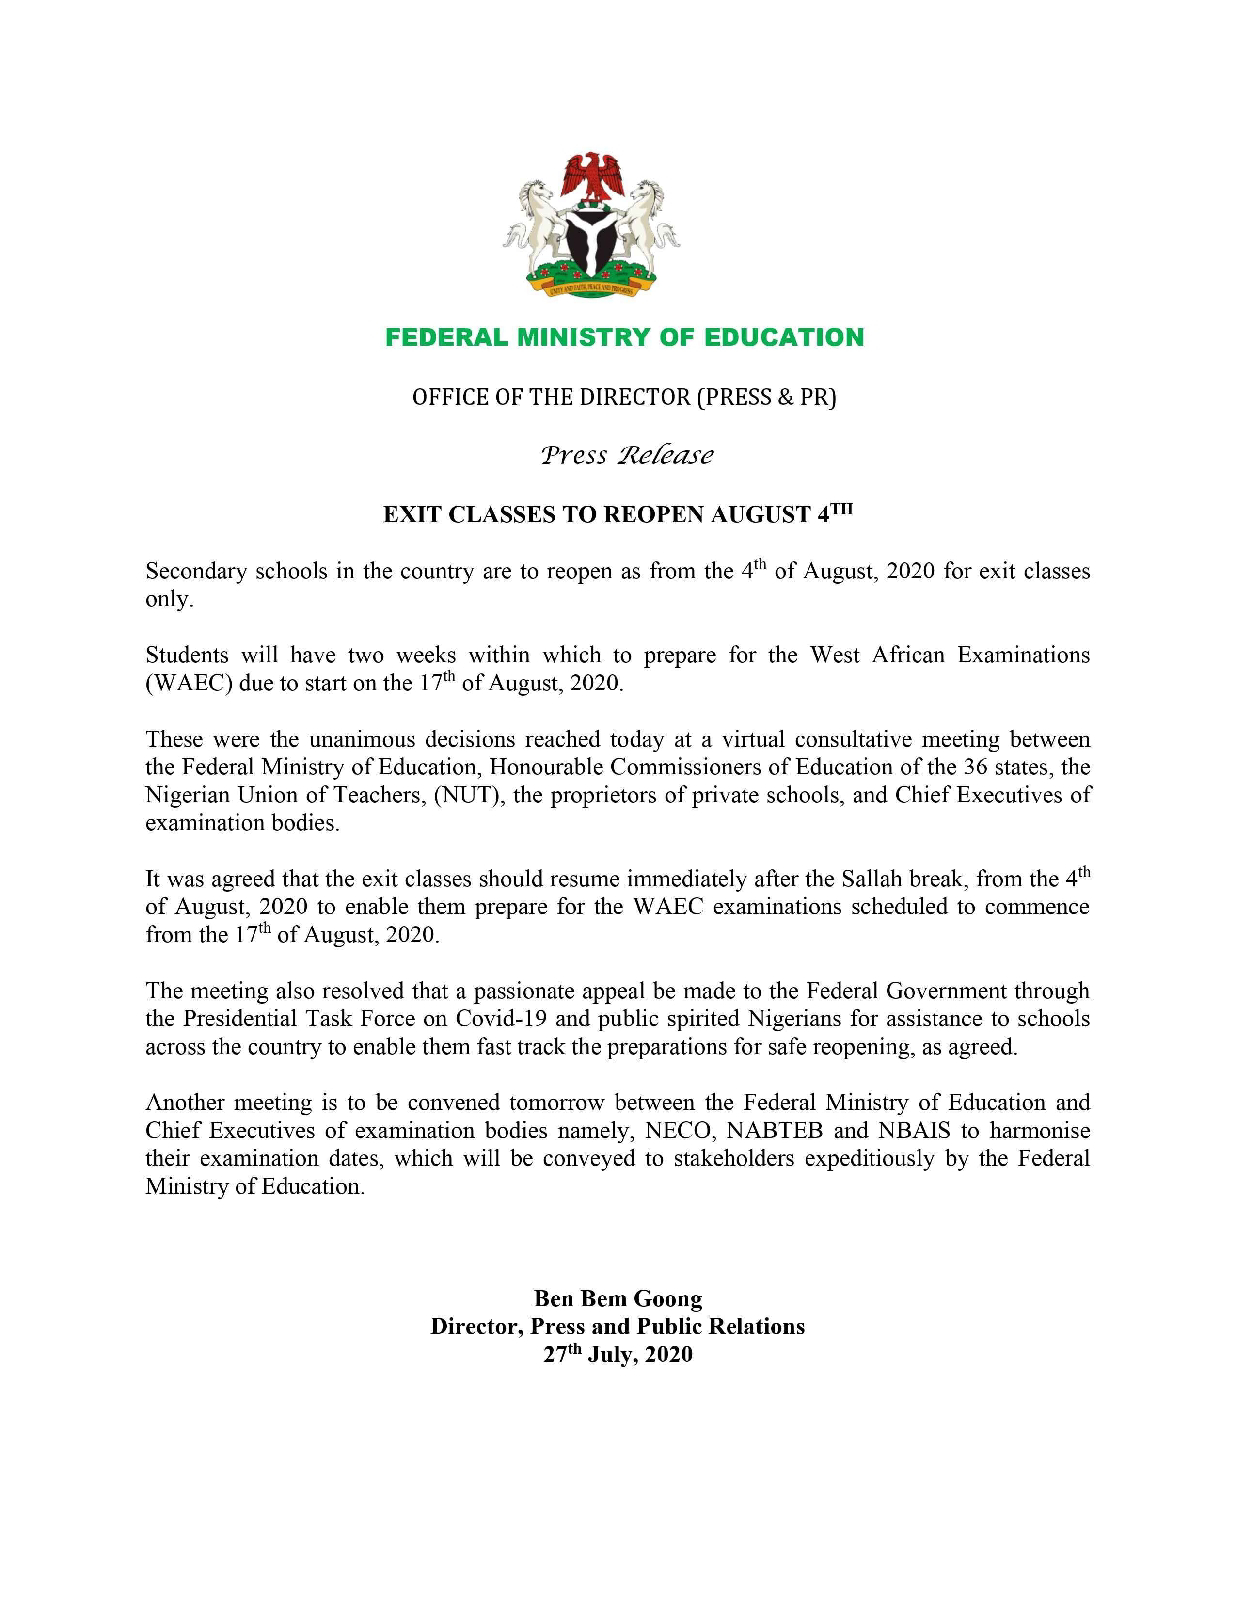 New resumption date for students